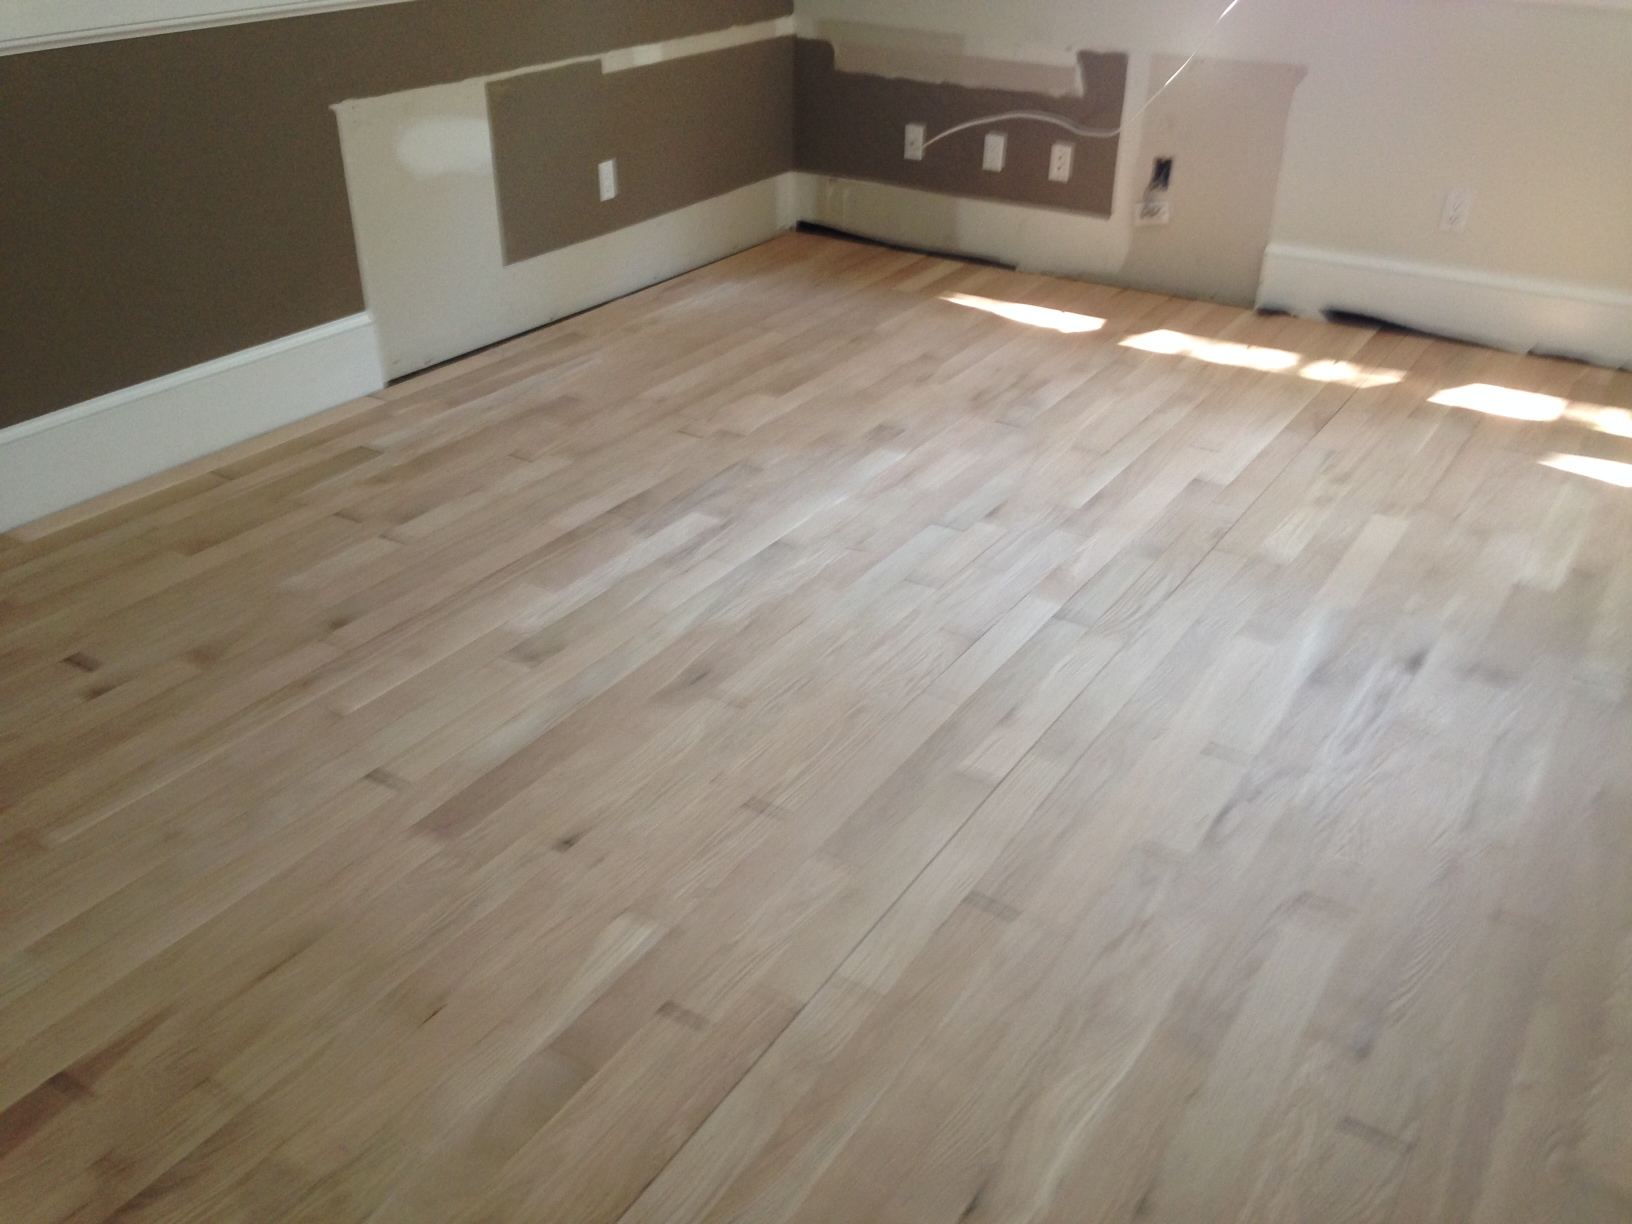 Solid white oak flooring gurus floor for Unfinished hardwood floors